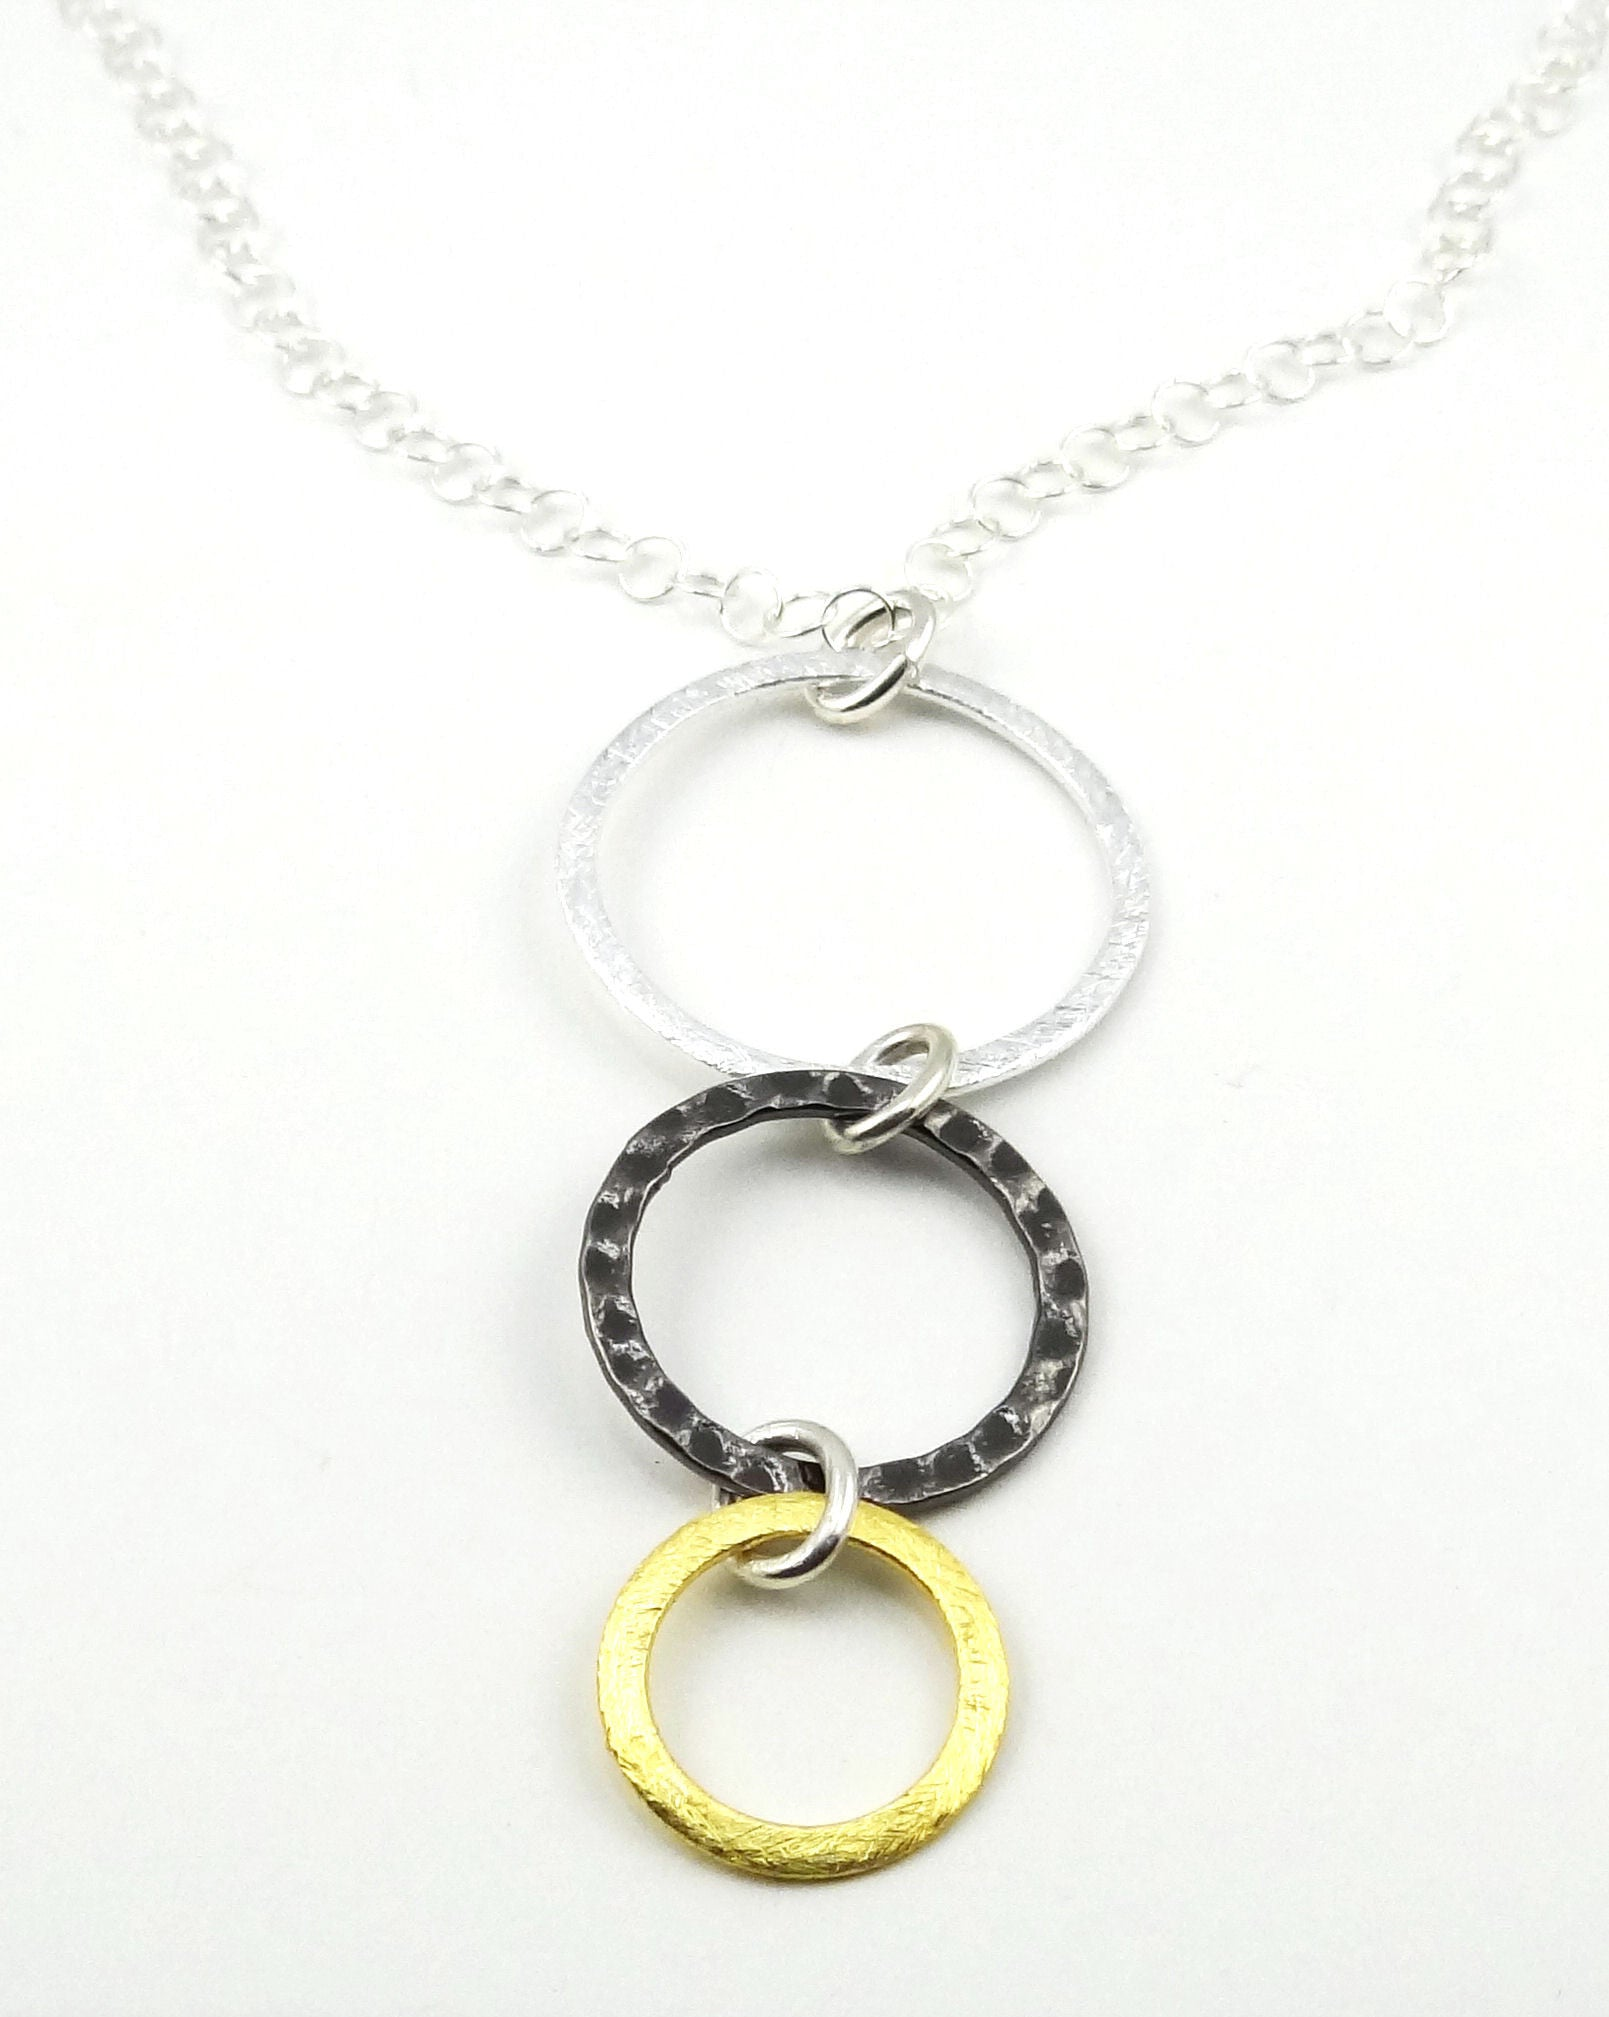 Mixed Metal #2 - Silver, Steel & Gold Triple Ring Necklace